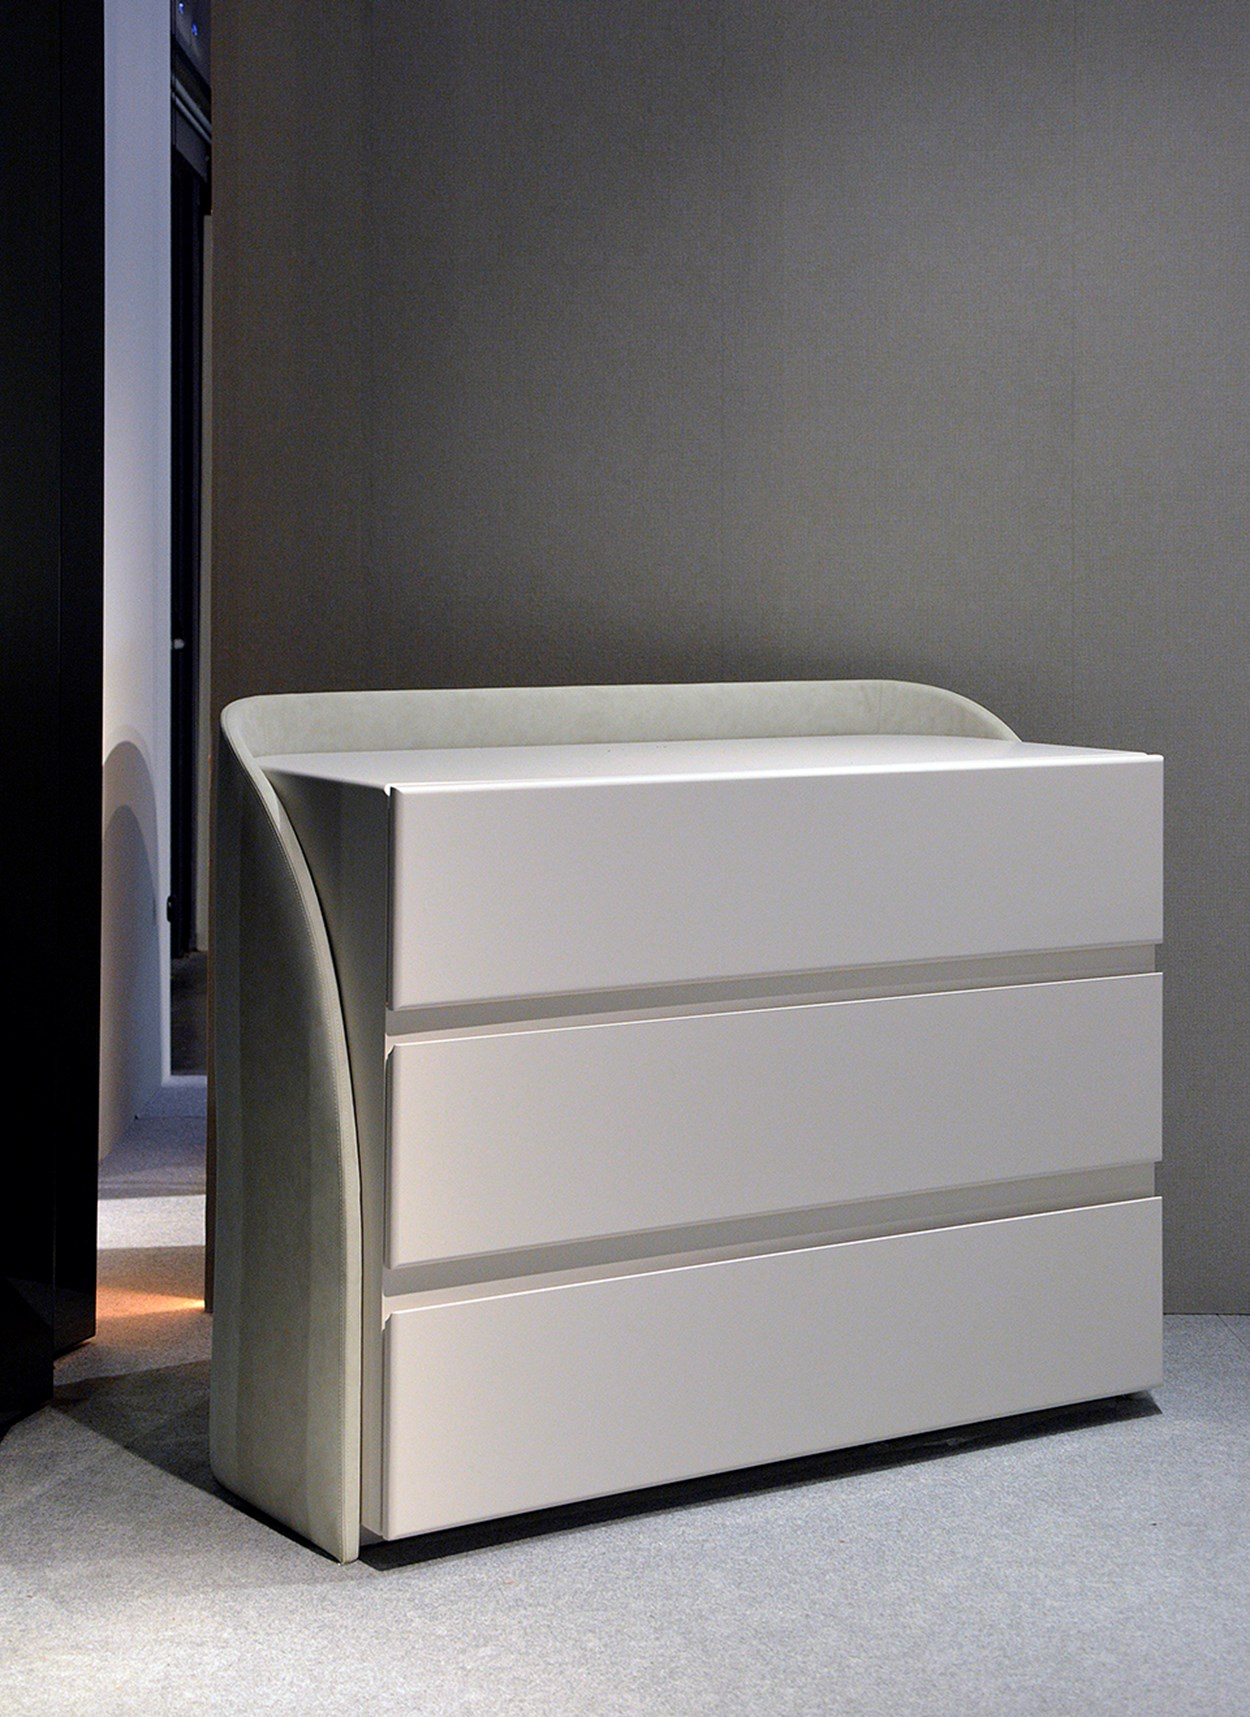 coleccion alexandra-cricket-bedroom collection-06 - copia.jpg